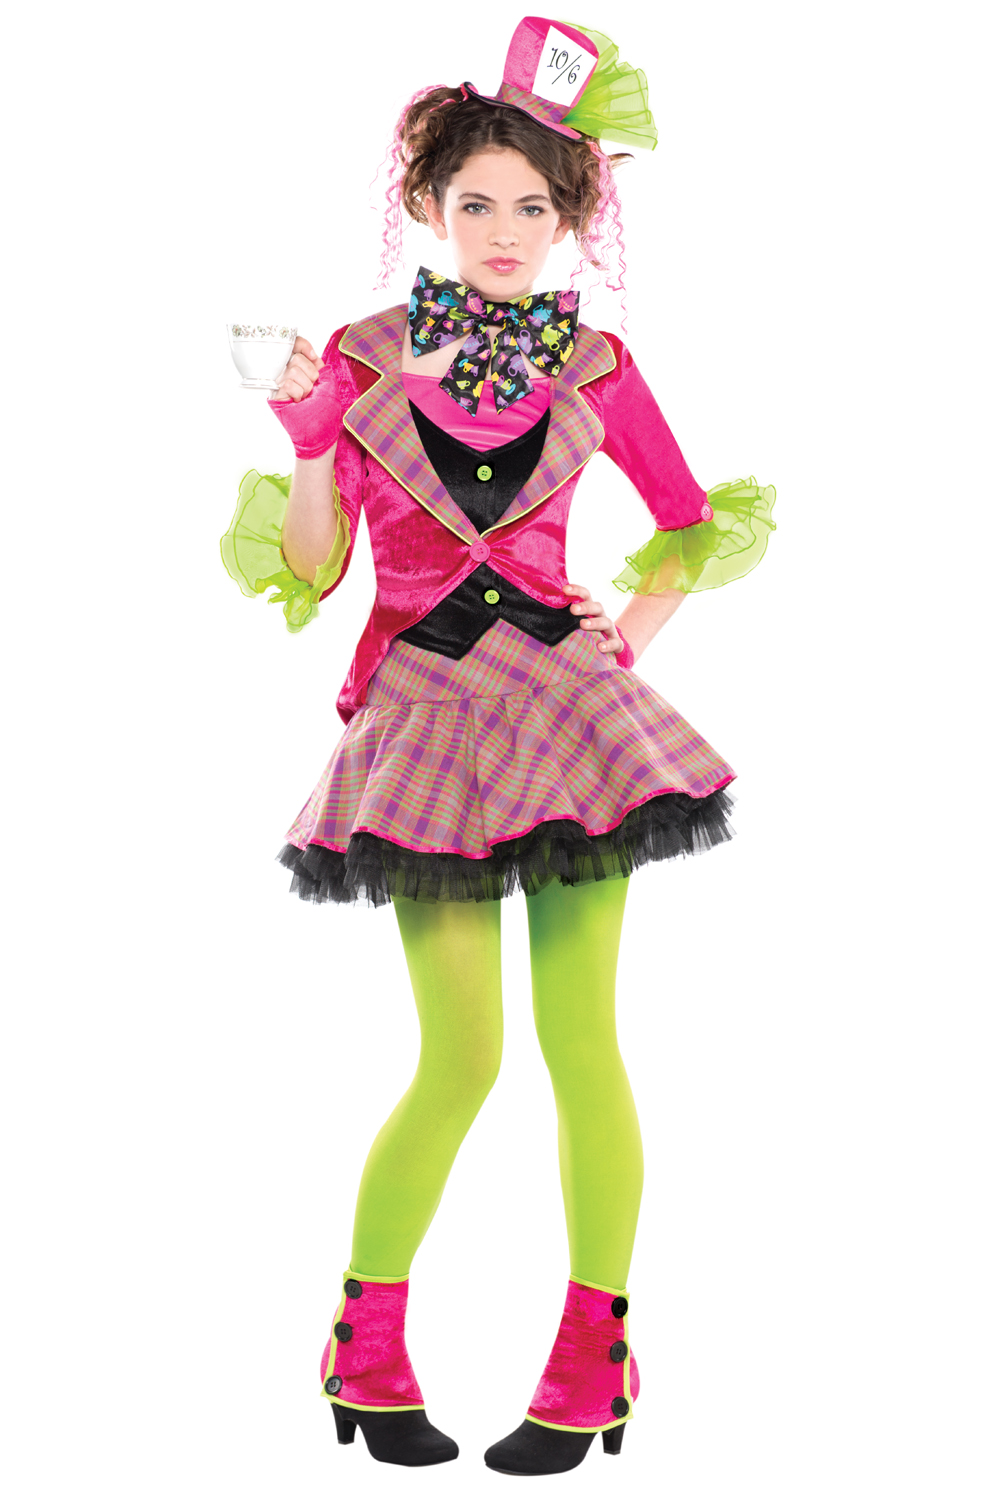 Girls-Mad-Hatter-Costume-amp-Tights-New-Tea-Party-Fairy-Tale-Fancy-Dress-Outfit